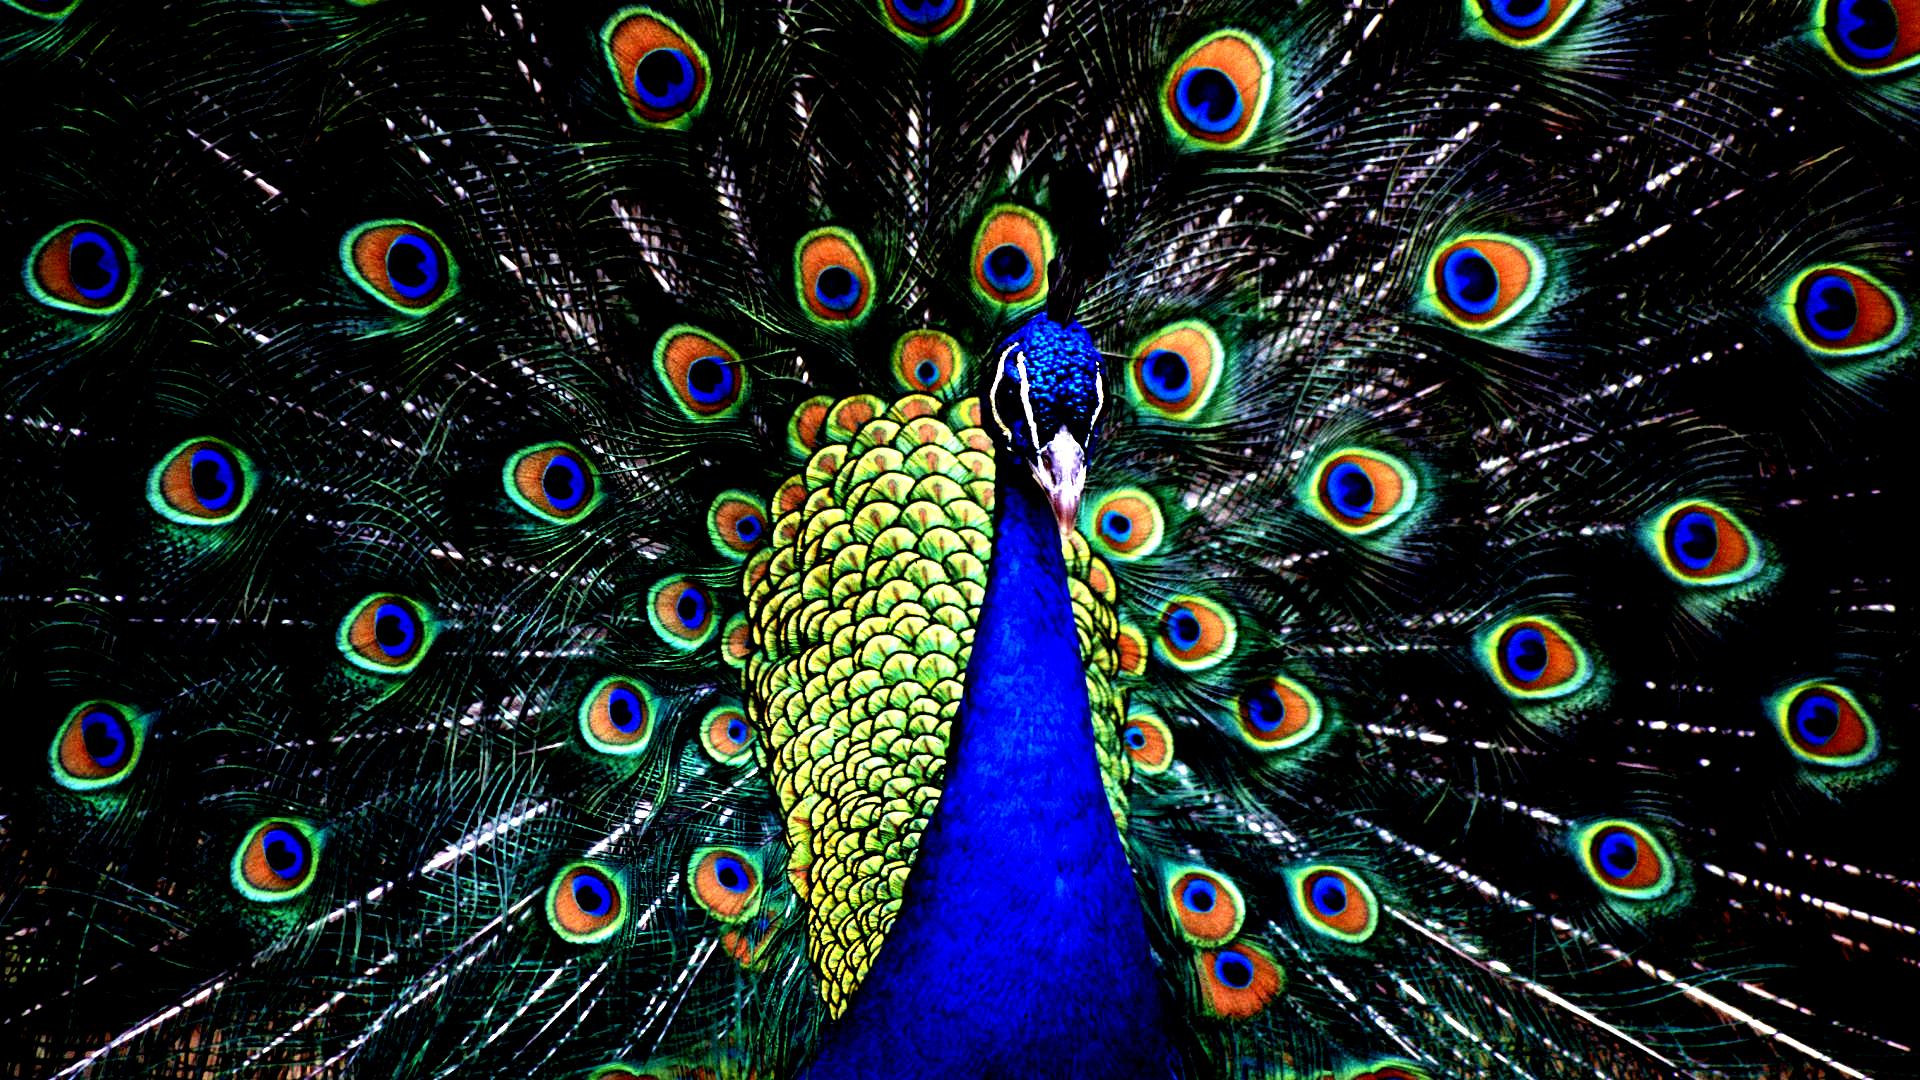 Peacock HD Wallpapers